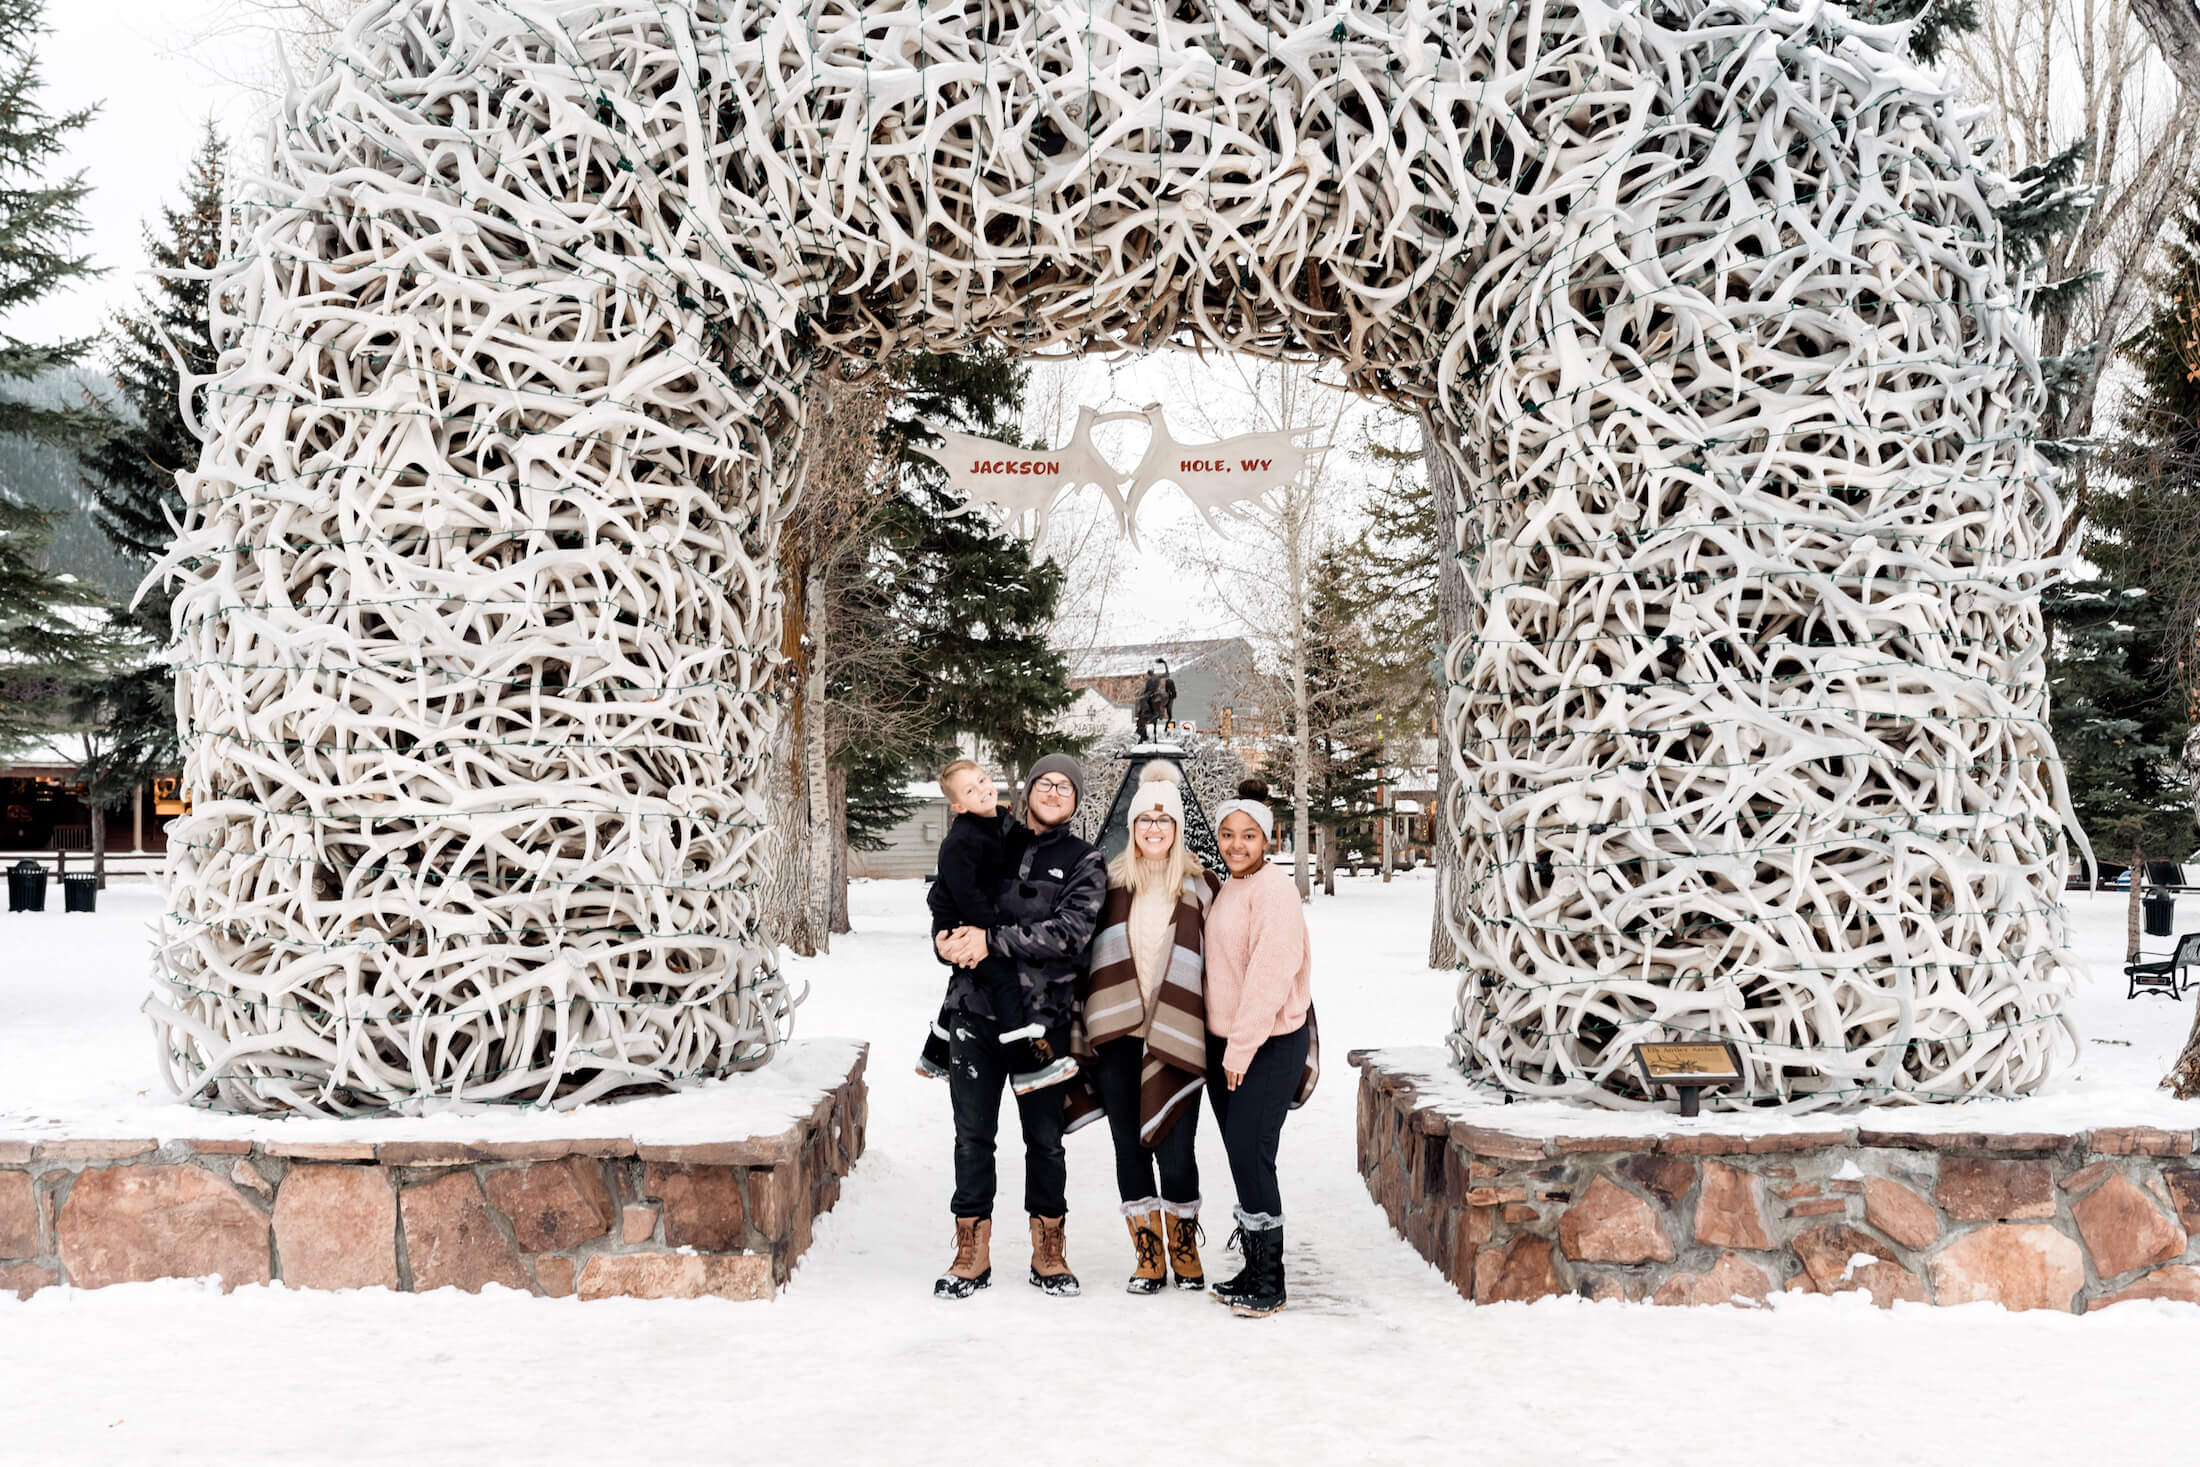 family of 4 standing in front of the antlers in town square in Jackson Hole, Wyoming